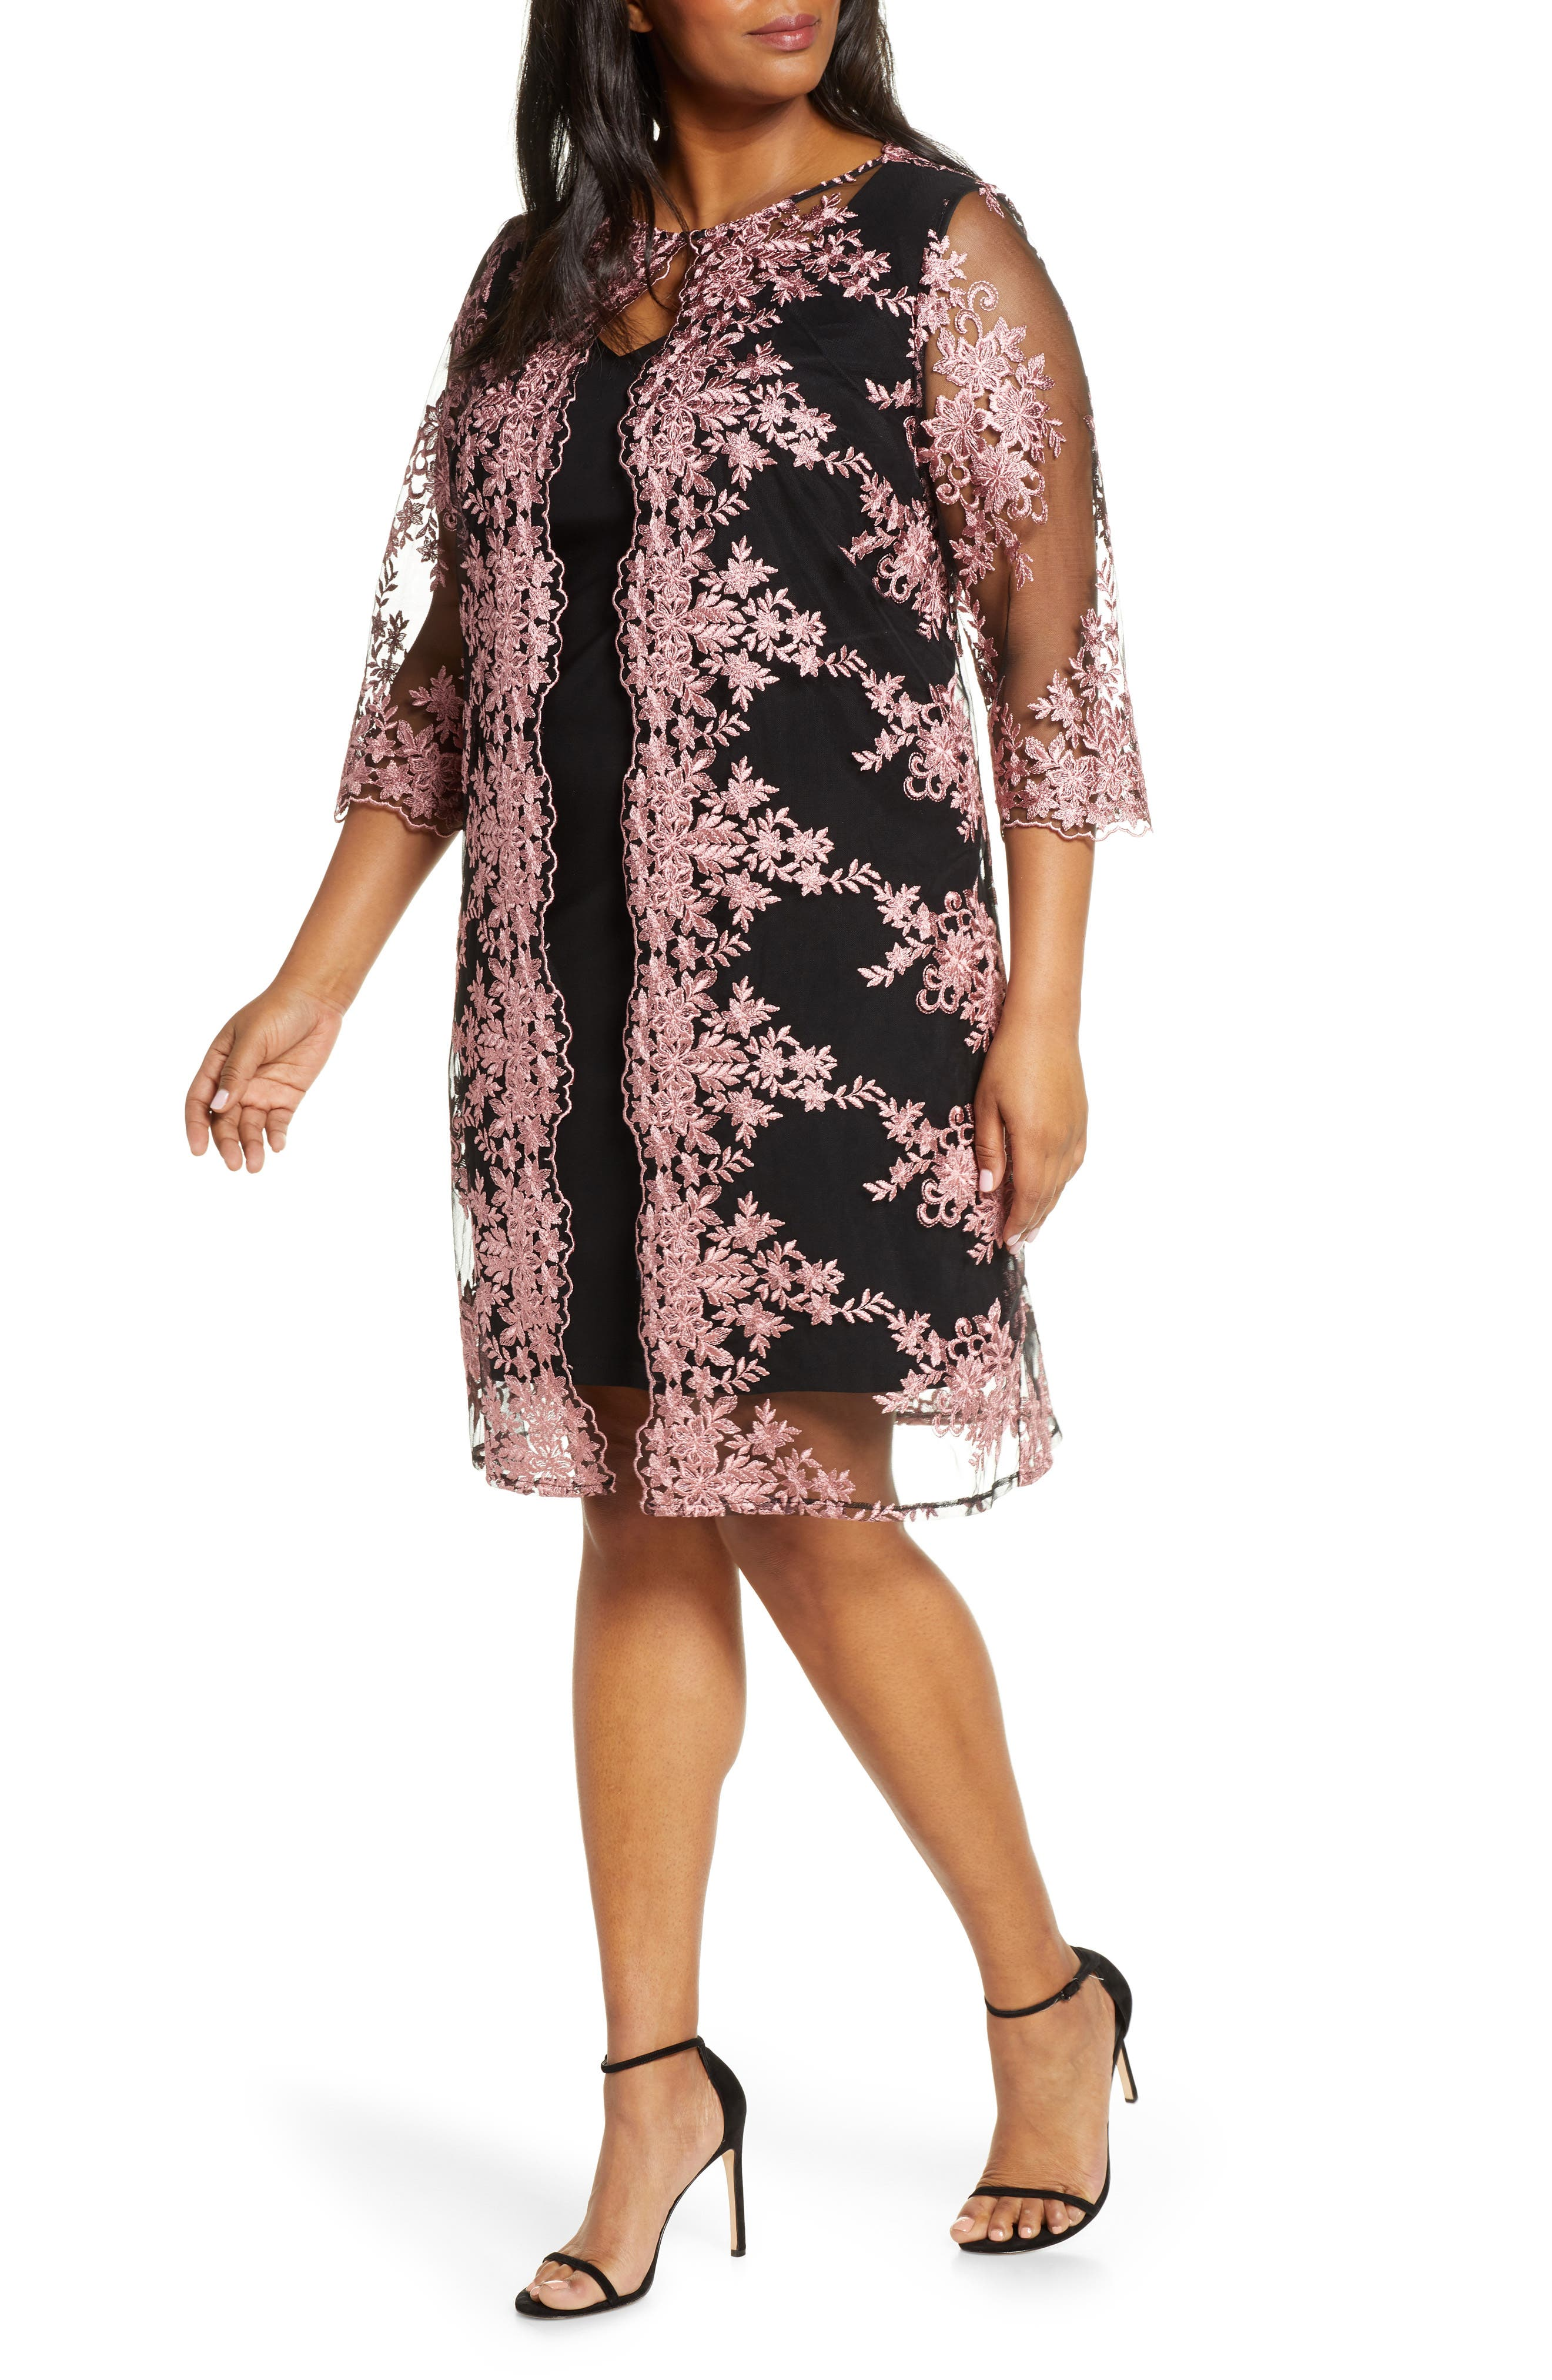 Plus Size Alex Evenings Embroidered Chiffon Overlay Cocktail Dress, Black